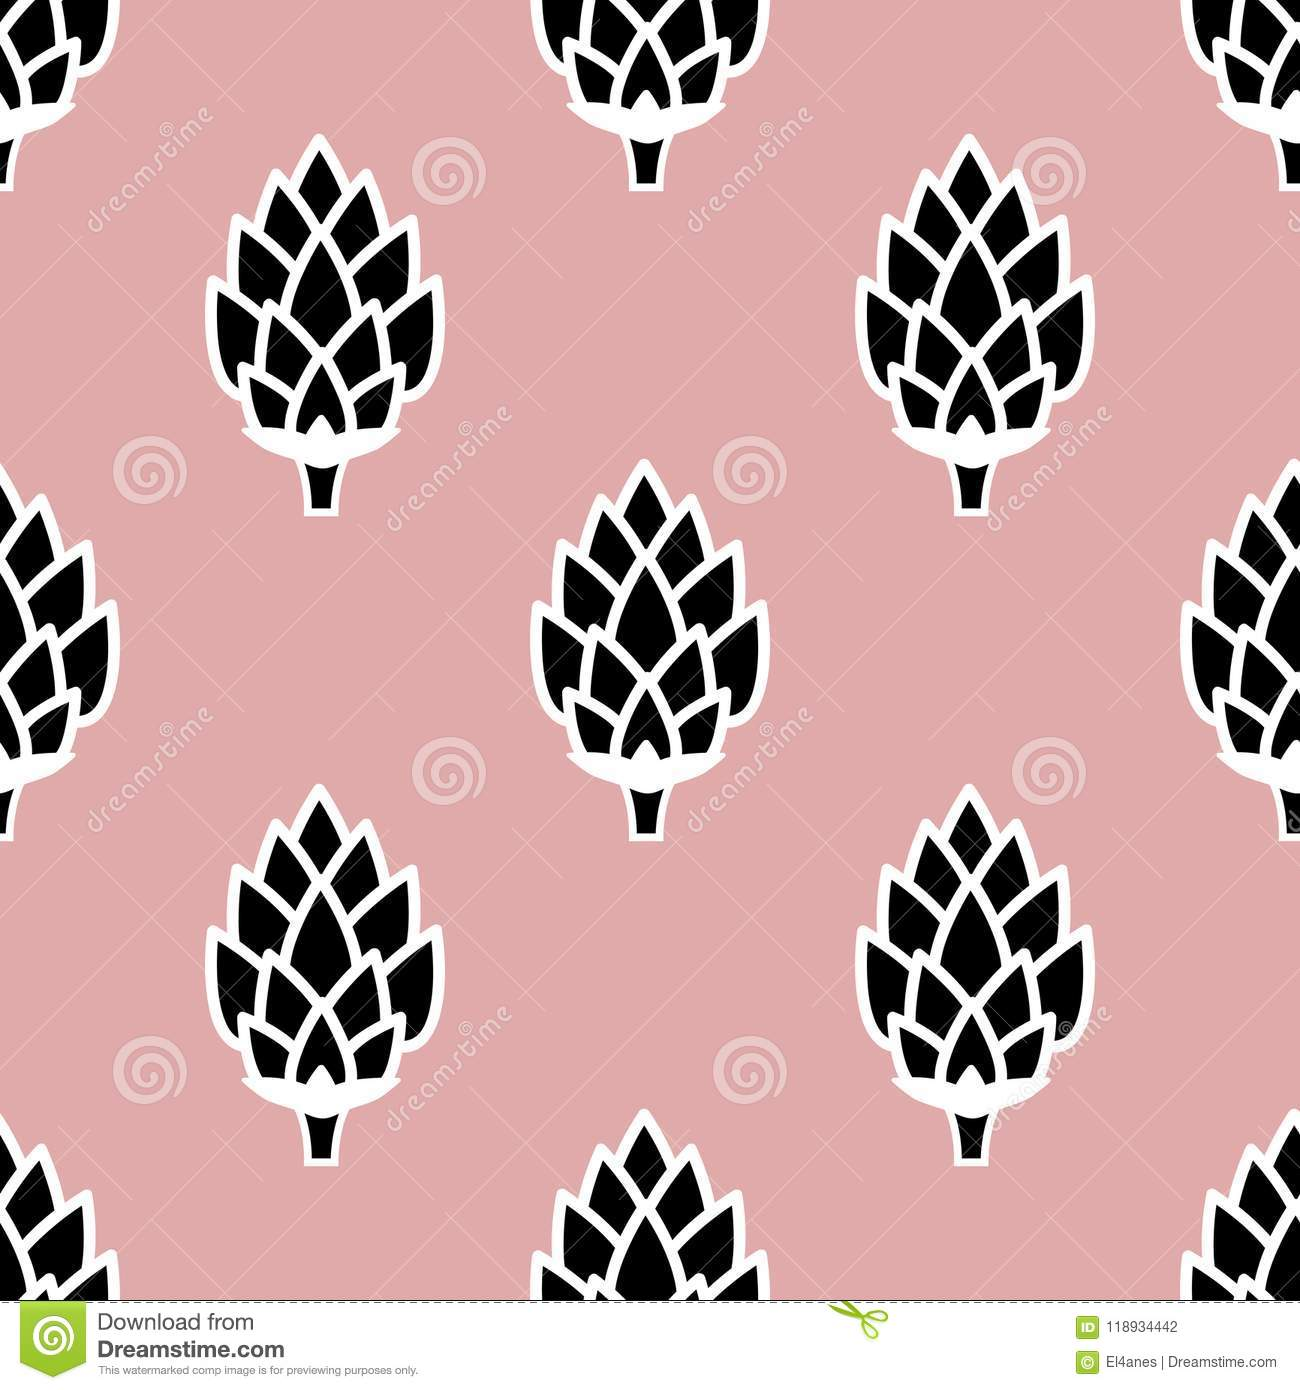 Wallpaper With Hops Stock Vector Illustration Of Cartoon 118934442